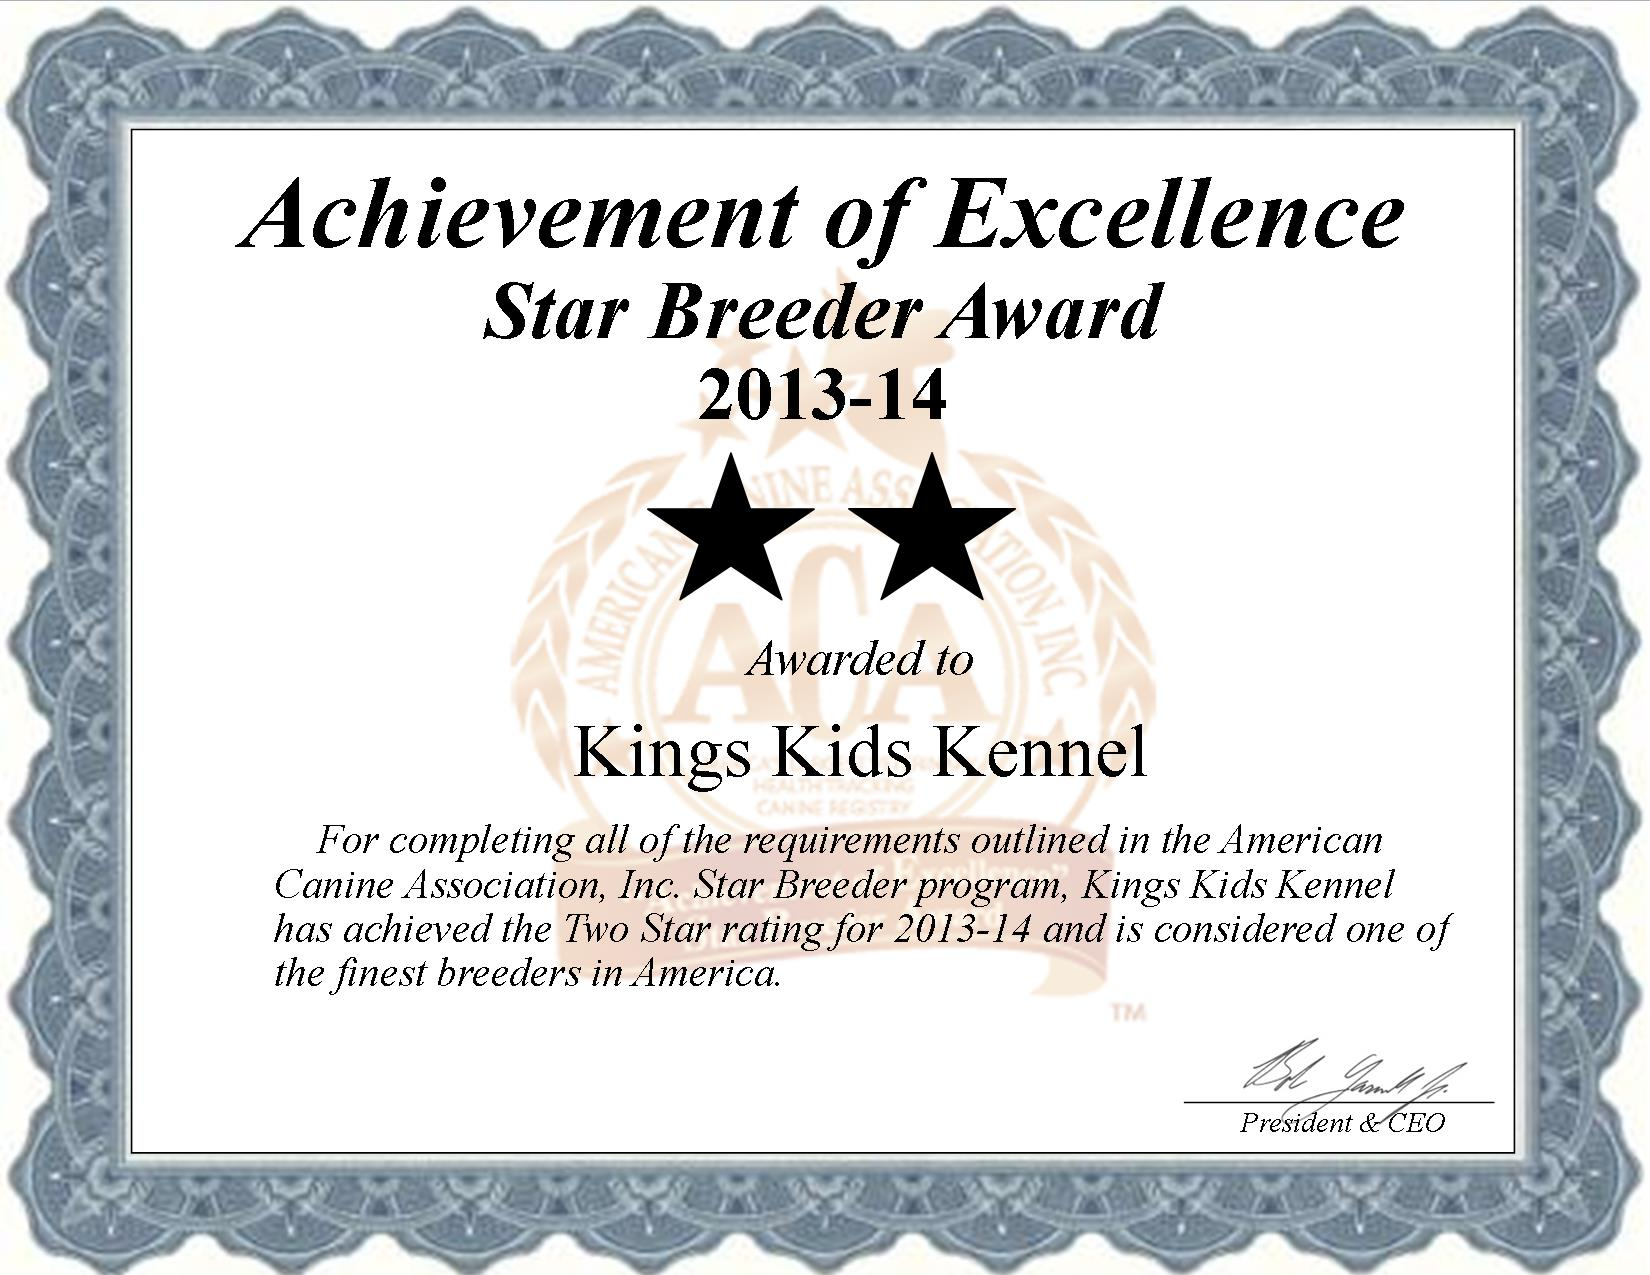 Kings Kids, Kennel, Kings Kids Kennel, Susan, Susan Kennel, breeder, star breeder, aca, star breeder, 5 star, Buffalo, Missouri, MO, dog, puppy, puppies, dog breeder, dog breeders, Missouri breeder, Kings Kids Kennel dog breeder